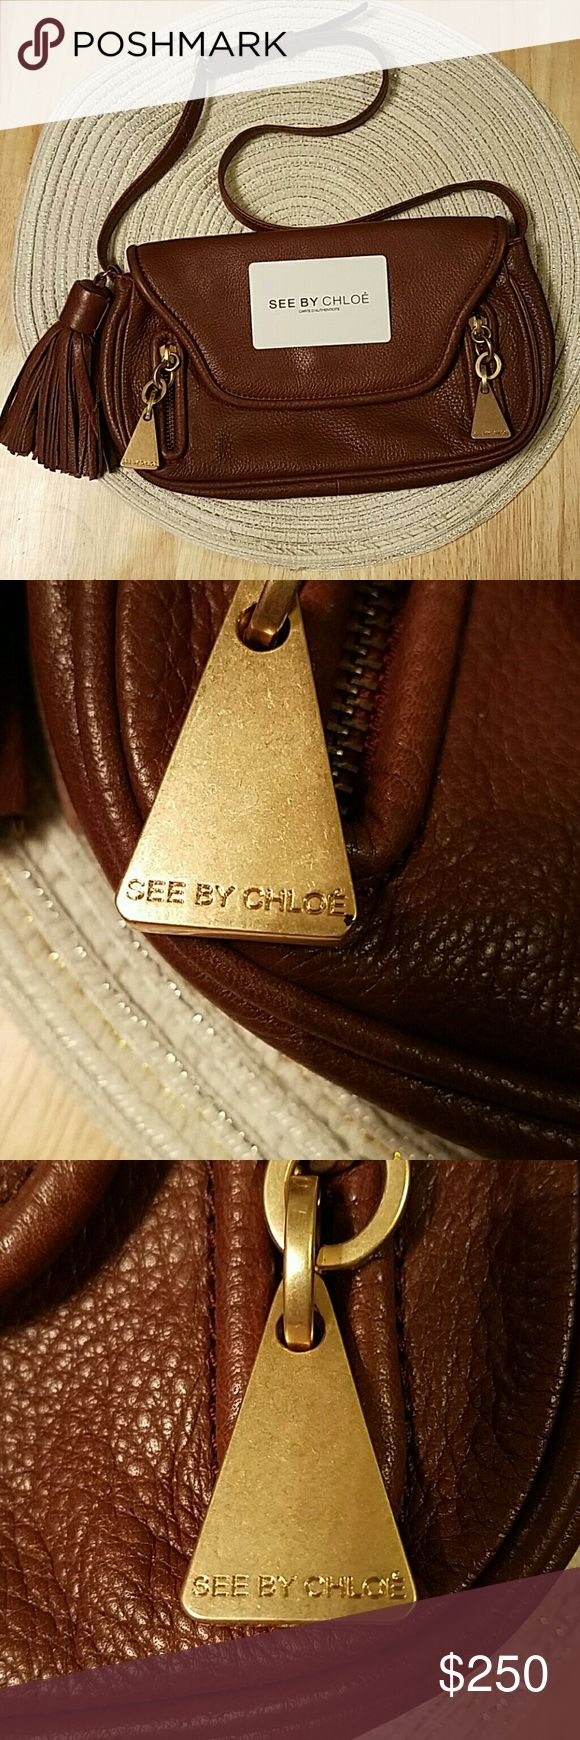 SEE BY CHLOE Brown Leather Tassel Shoulder Bag SEE BY CHLOE Brown Leather Tassel Shoulder Bag. Gorgeous condition, used x1! Comes with authentication card.   10.25 x 6 x 1.5 ish See by Chloe Bags